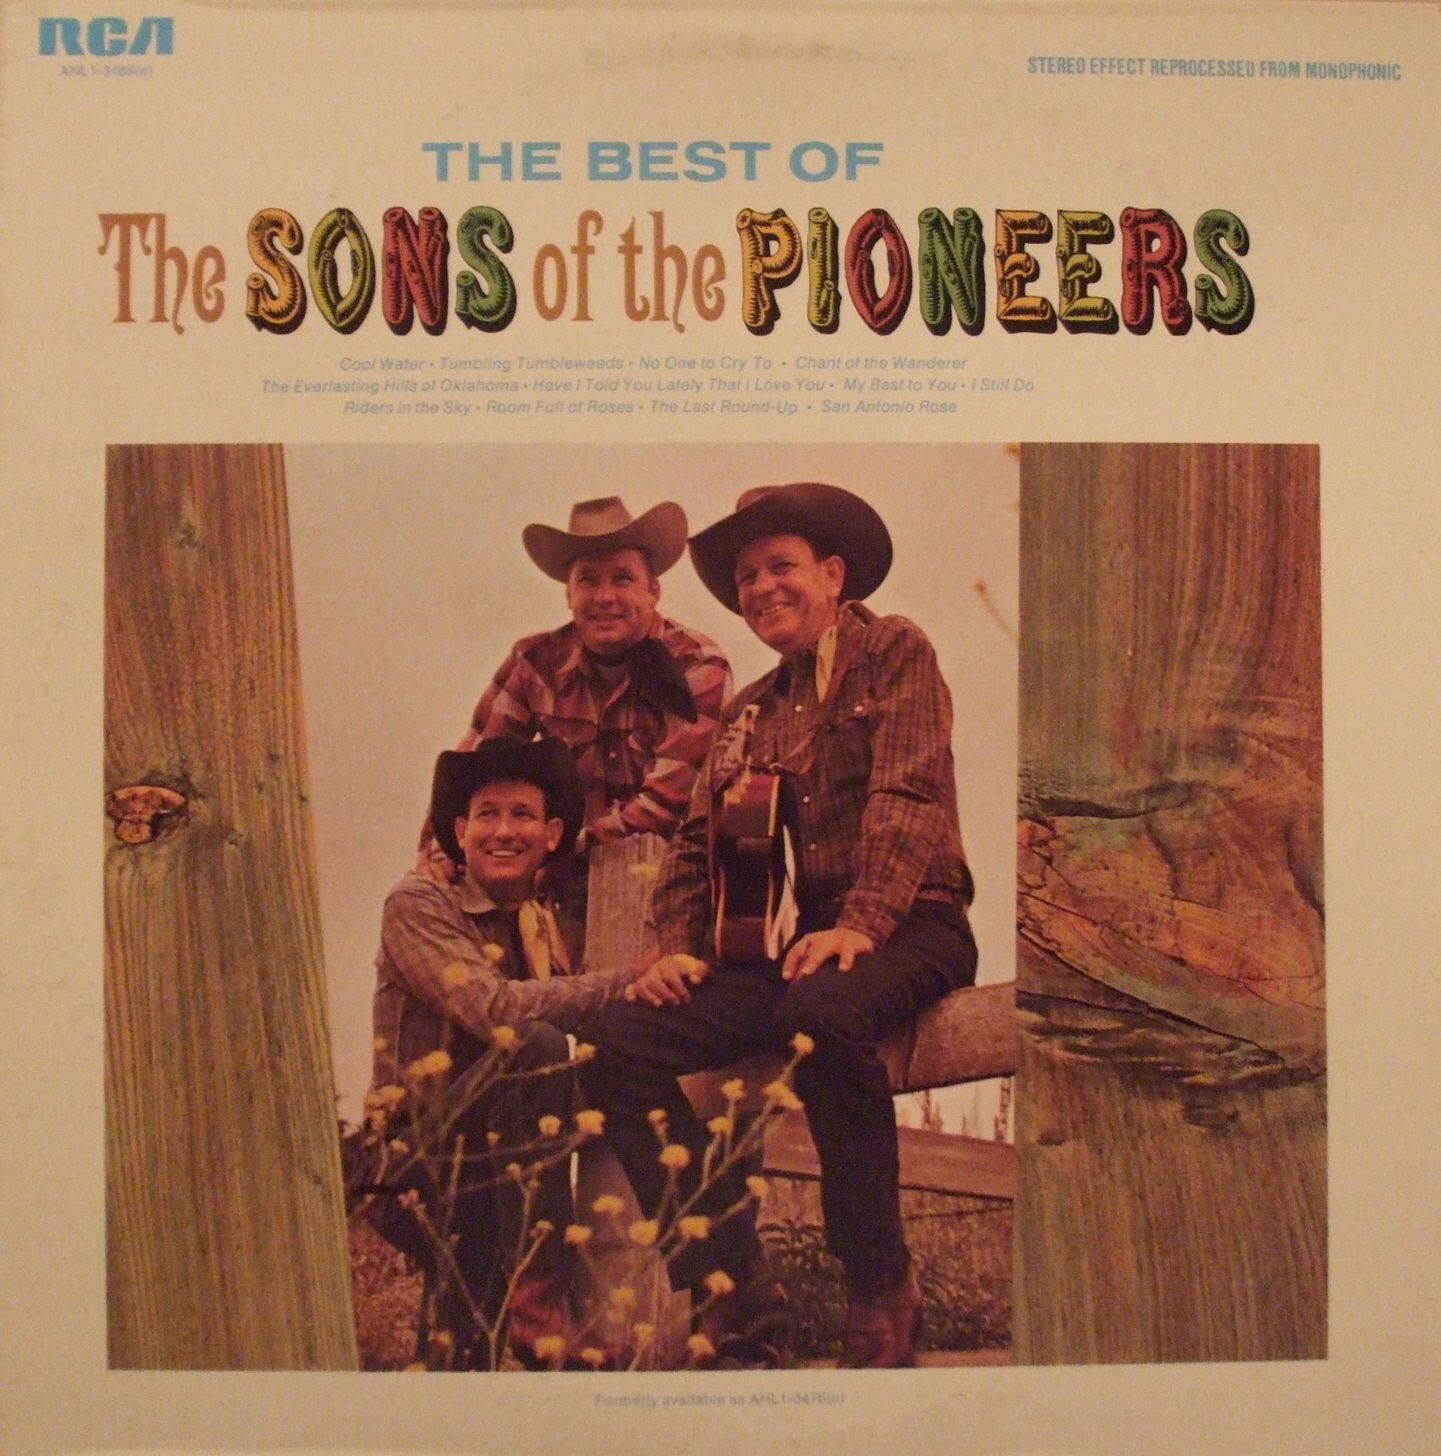 The Sons of The Pioneers (THE BEST OF) Vinyl Record Album 1966 RCA - Stereo